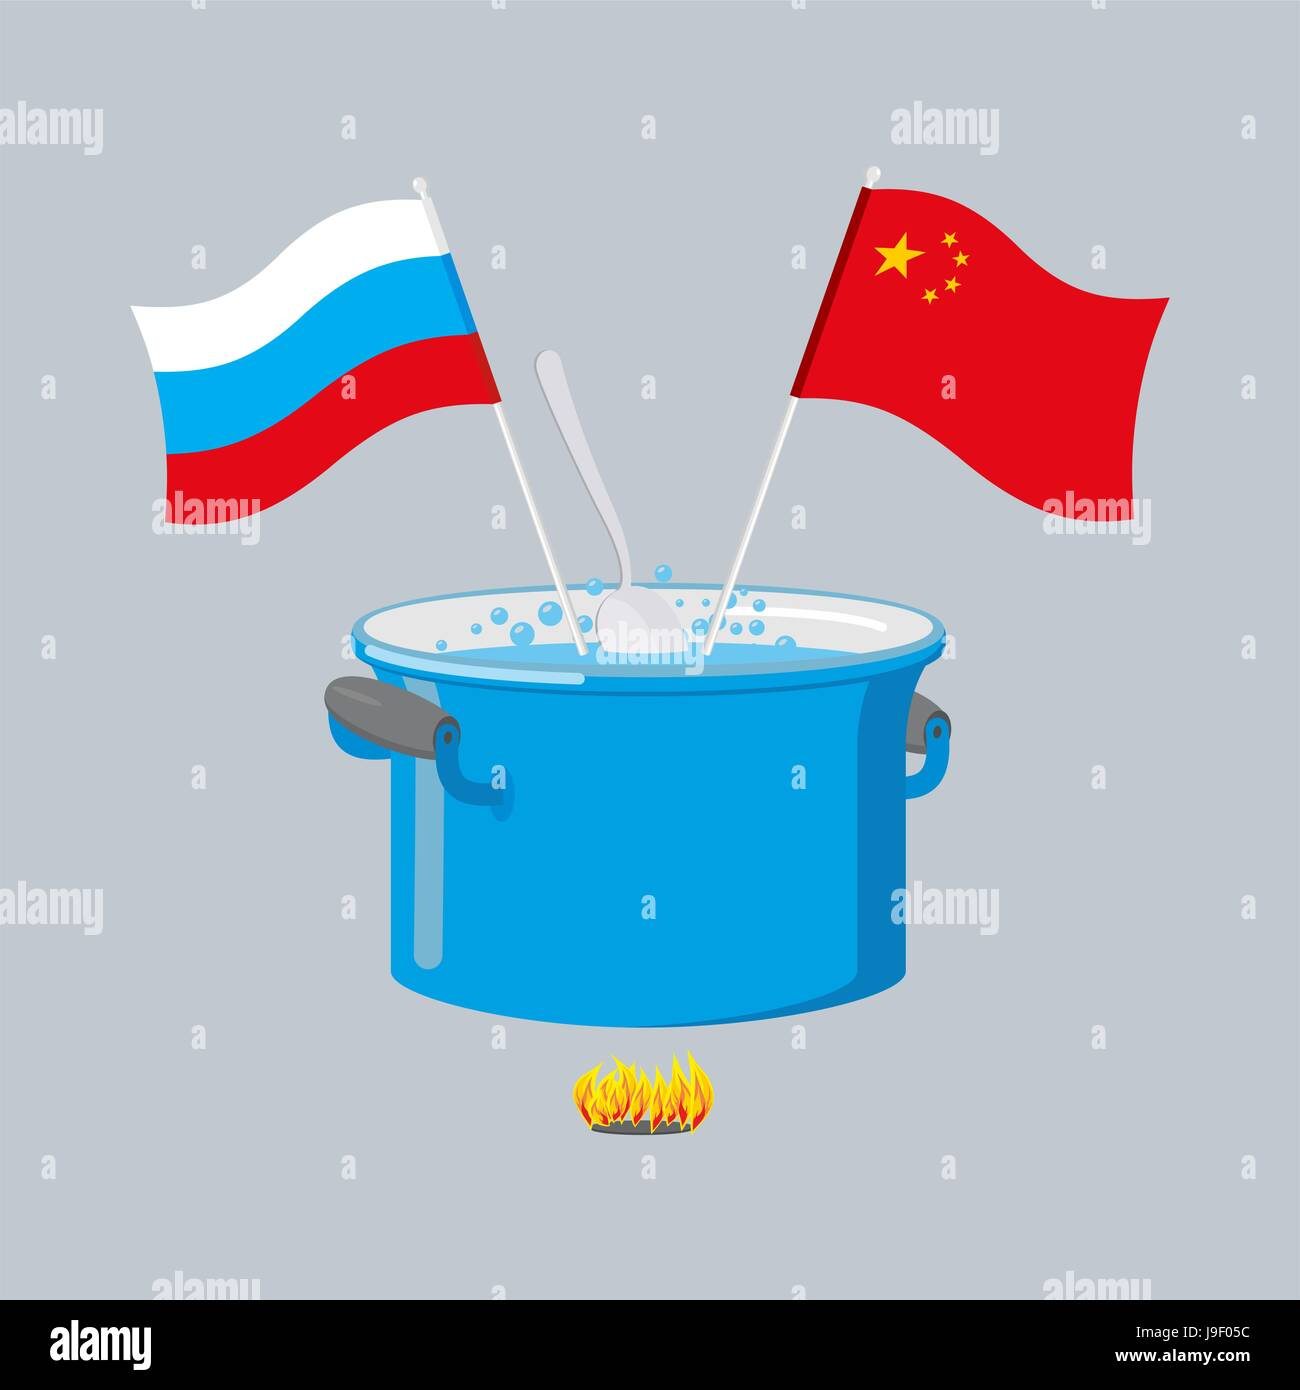 Political kitchen. Russia and China community. Cook soup in one pot ...